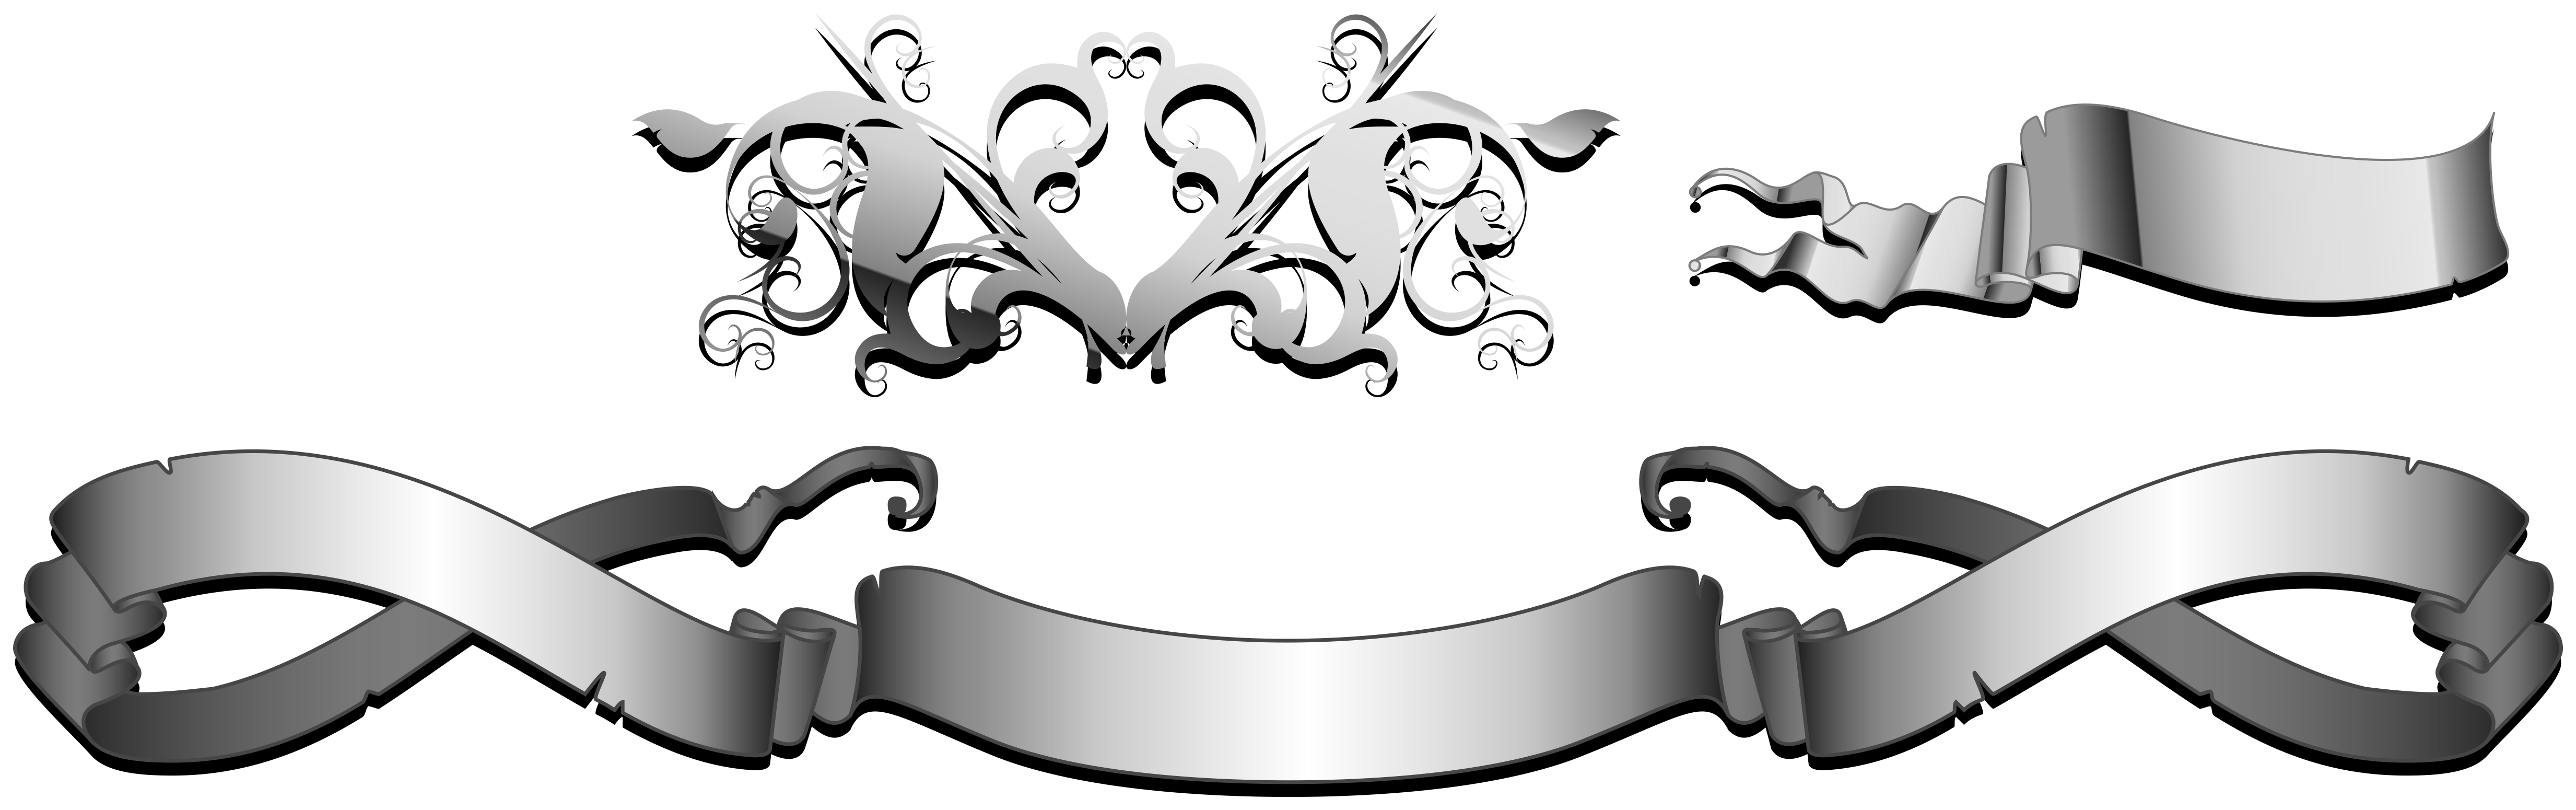 Banner vector black and white png. Silver ribbon transprent free